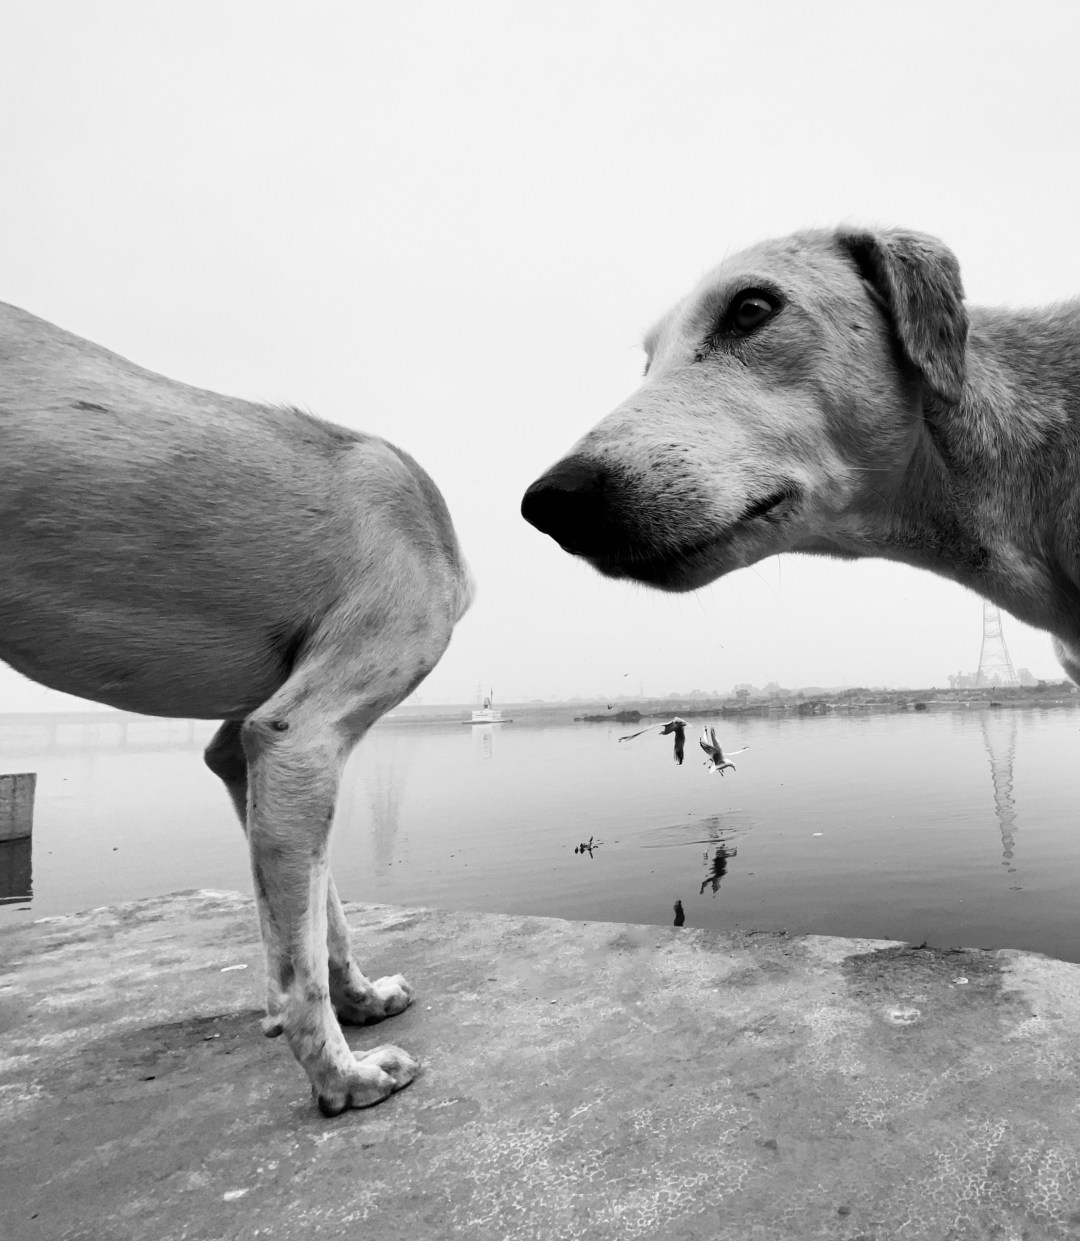 Two dogs pictured in black and white, one looking surprised while the other appears as an optical illusion to be headless